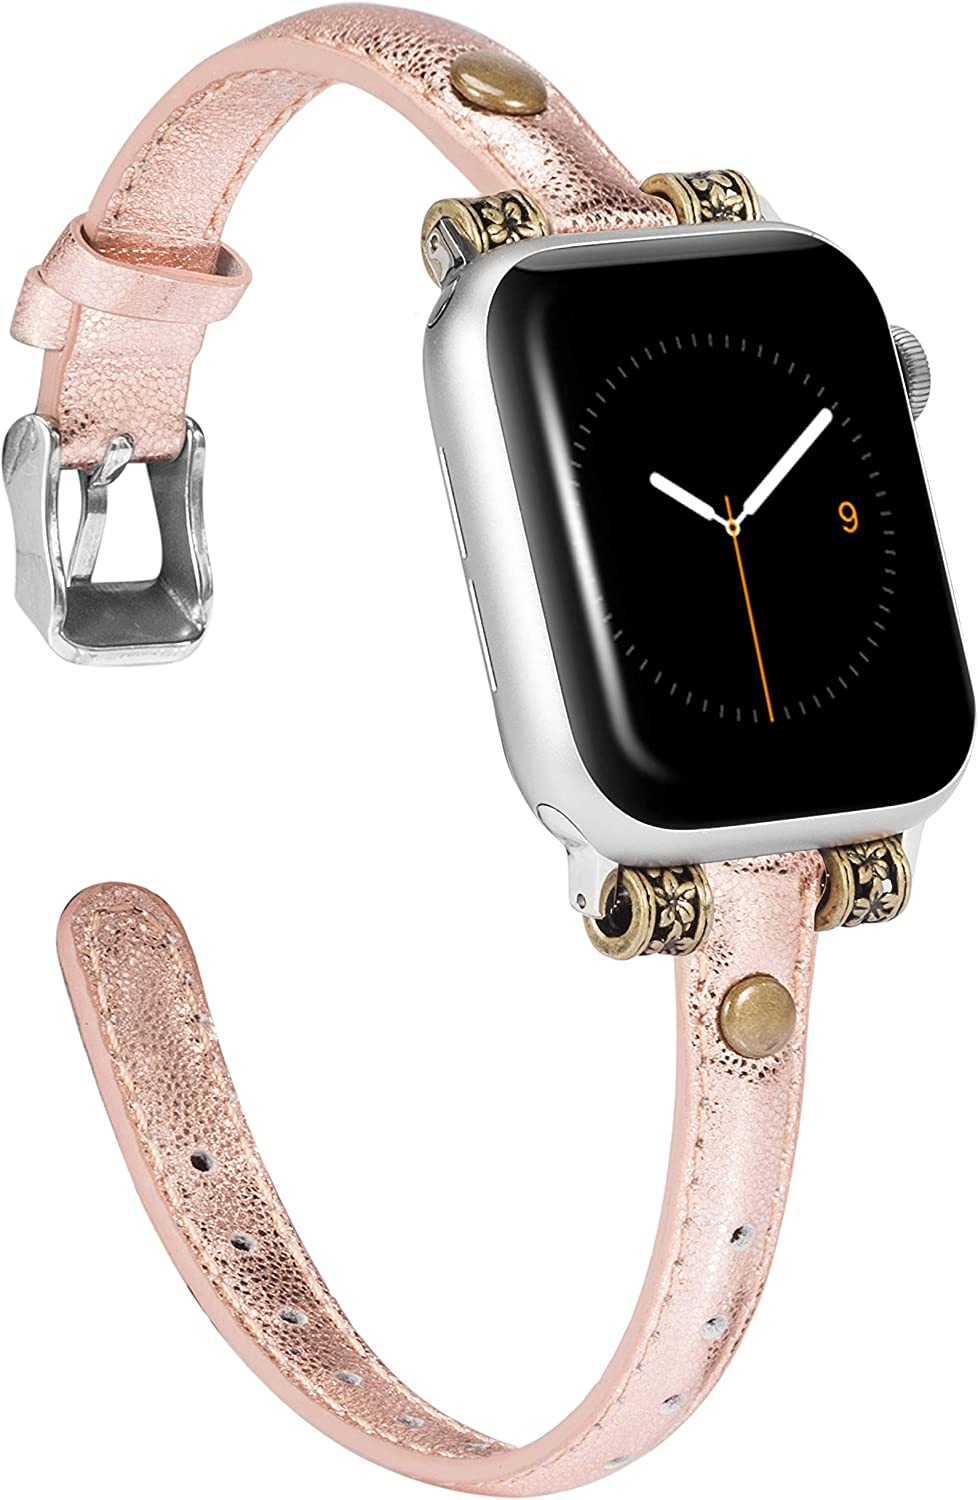 Wearlizer Leather Bands Compatible with Apple Watch Band 42mm 44mm for iWatch Womens Special Slim Vintage Wristband Replacement Strap SE Series 6 5 4 3 2 1 - Glitter Rose Gold